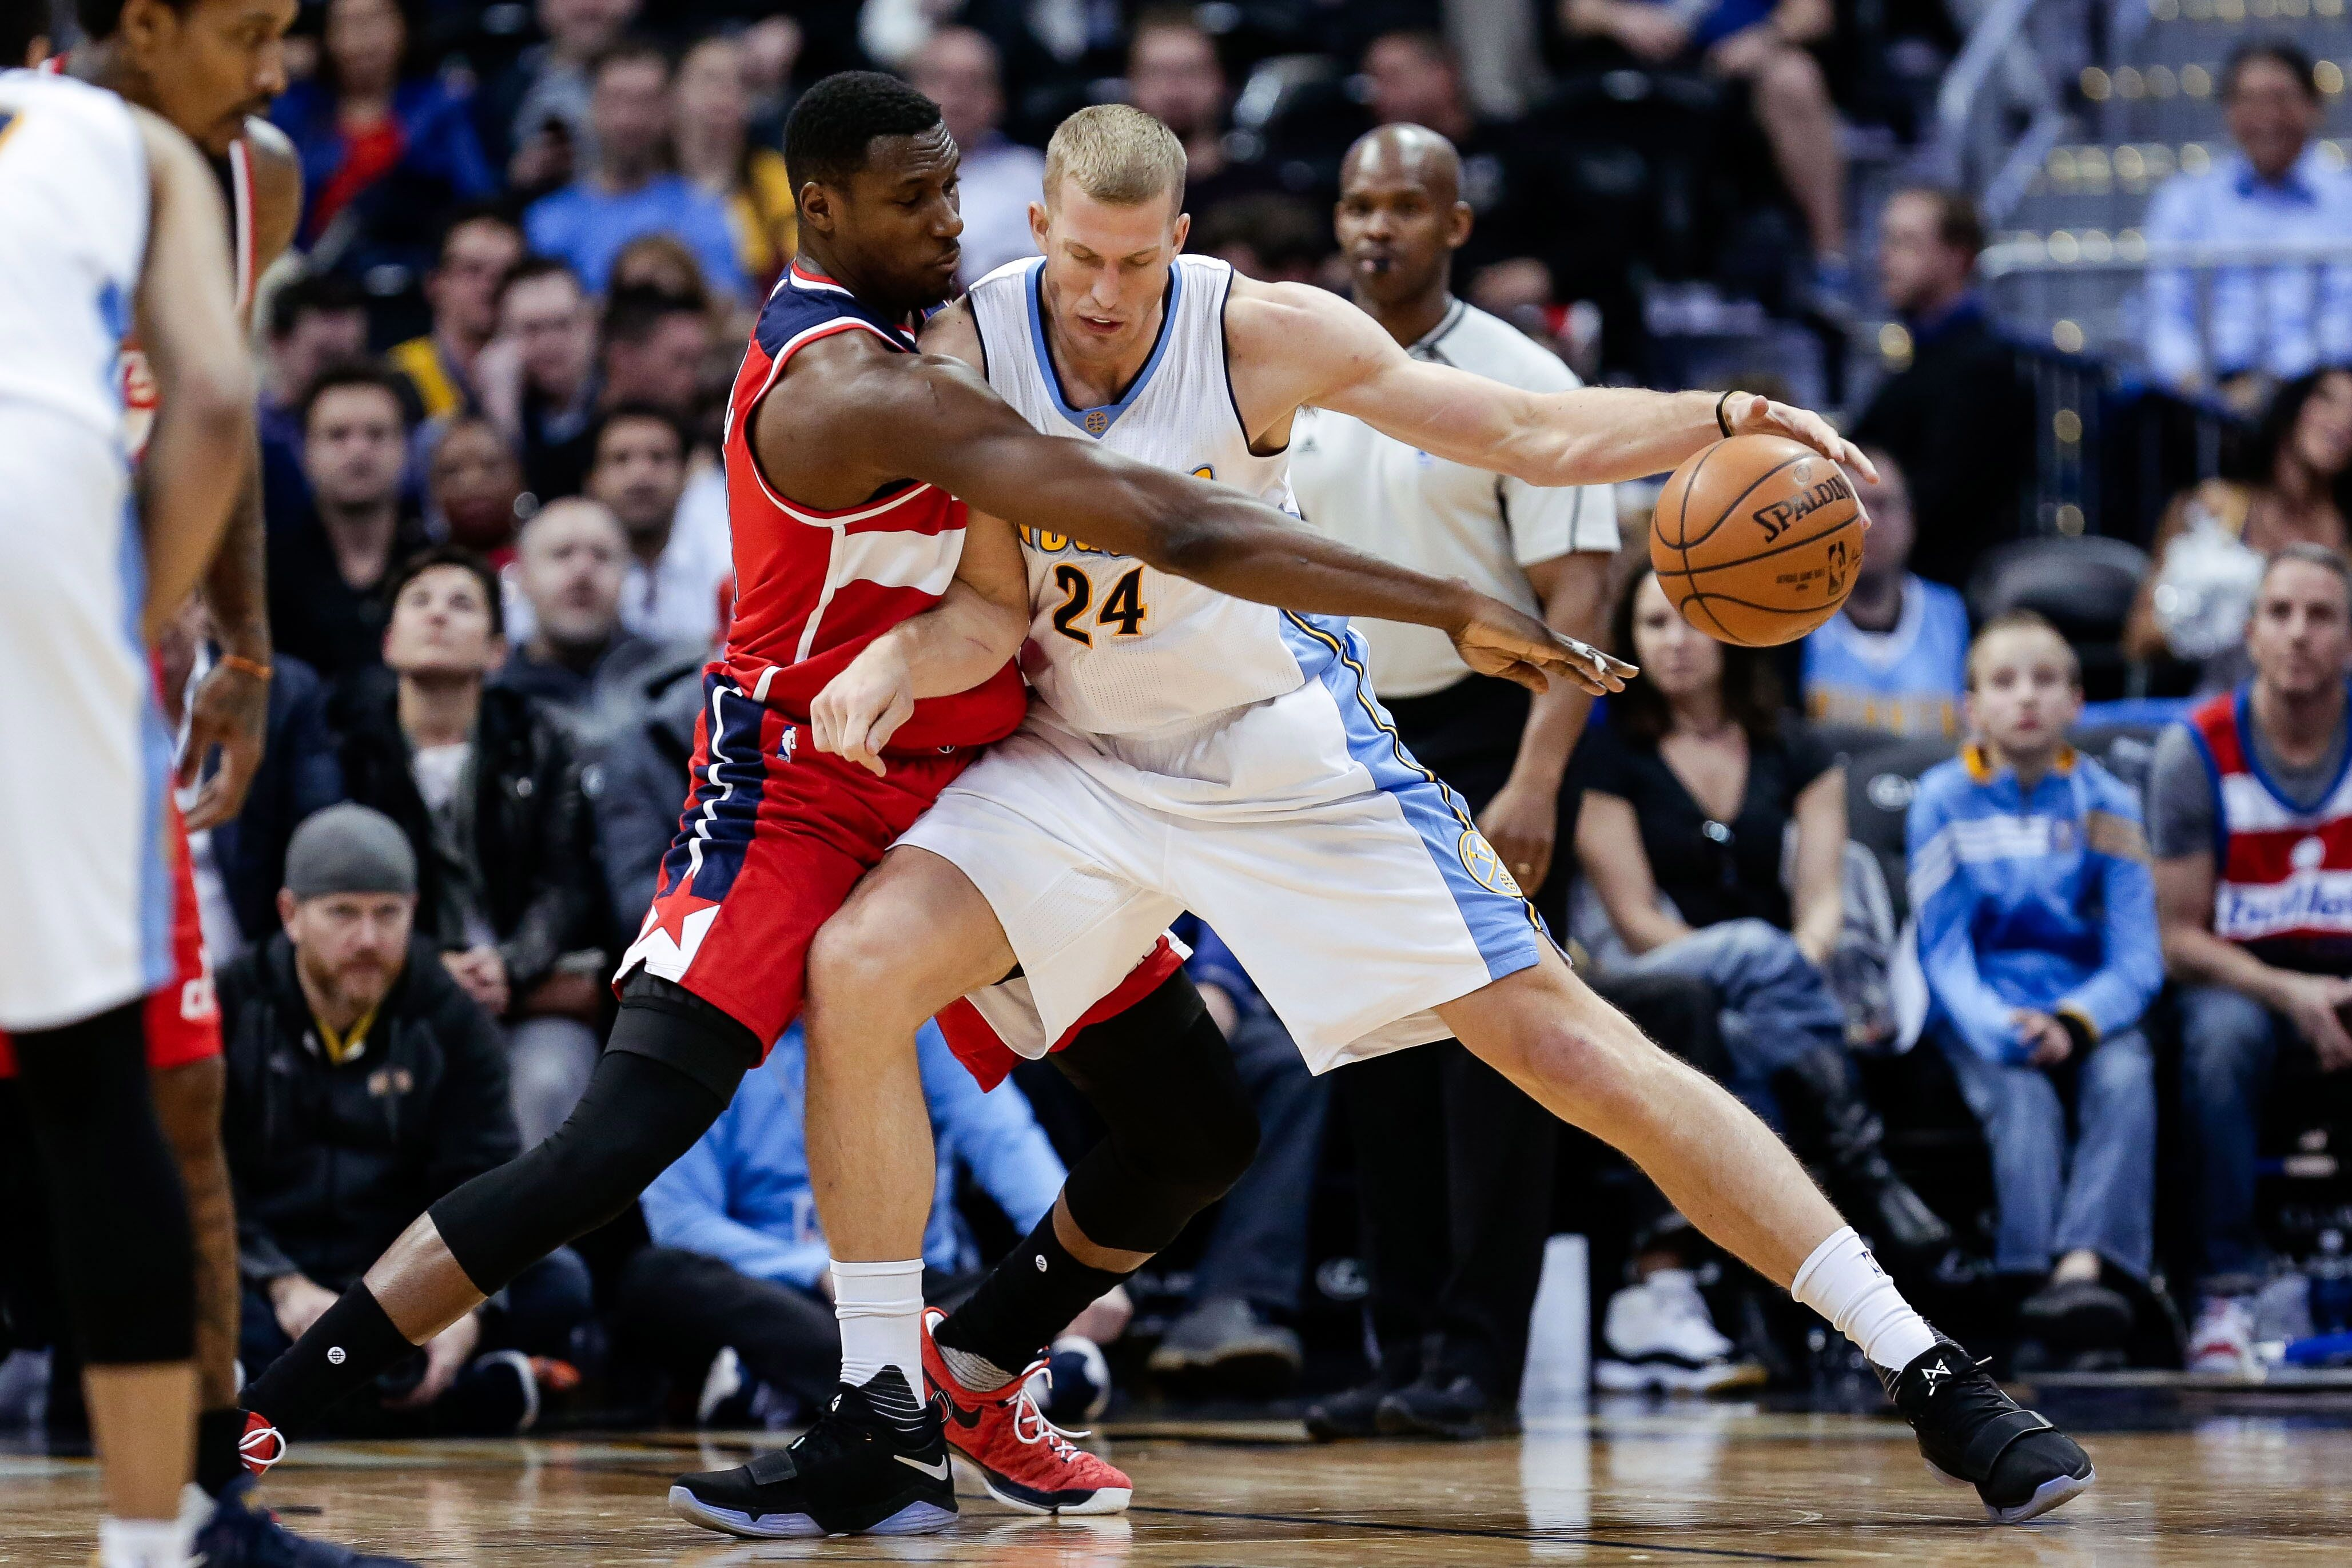 Mason plumlee returns to portland expect a nice ovation for 125 12th street 4th floor oakland ca 94607